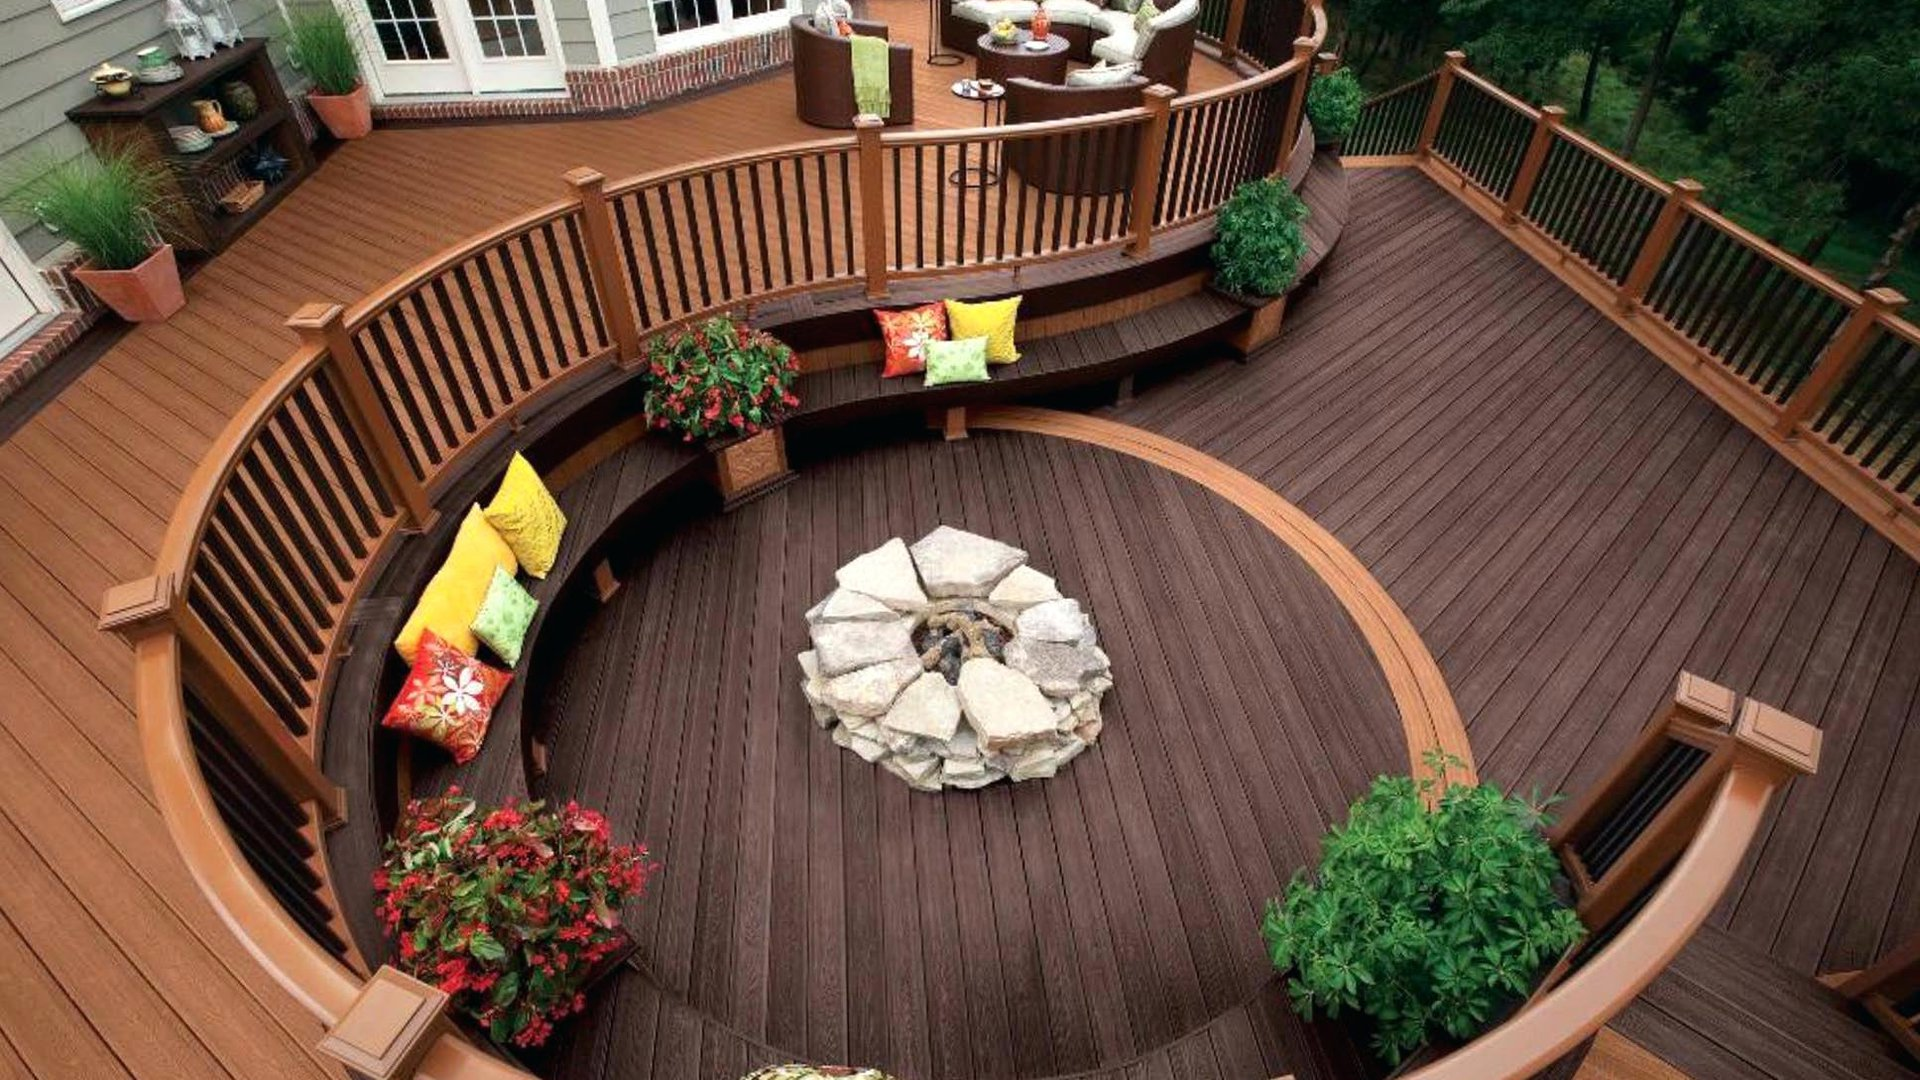 Beautiful-Backyard-Deck-Ideas-Design-with-Colorful-Pillow-and-Firepit-Ideas.jpg